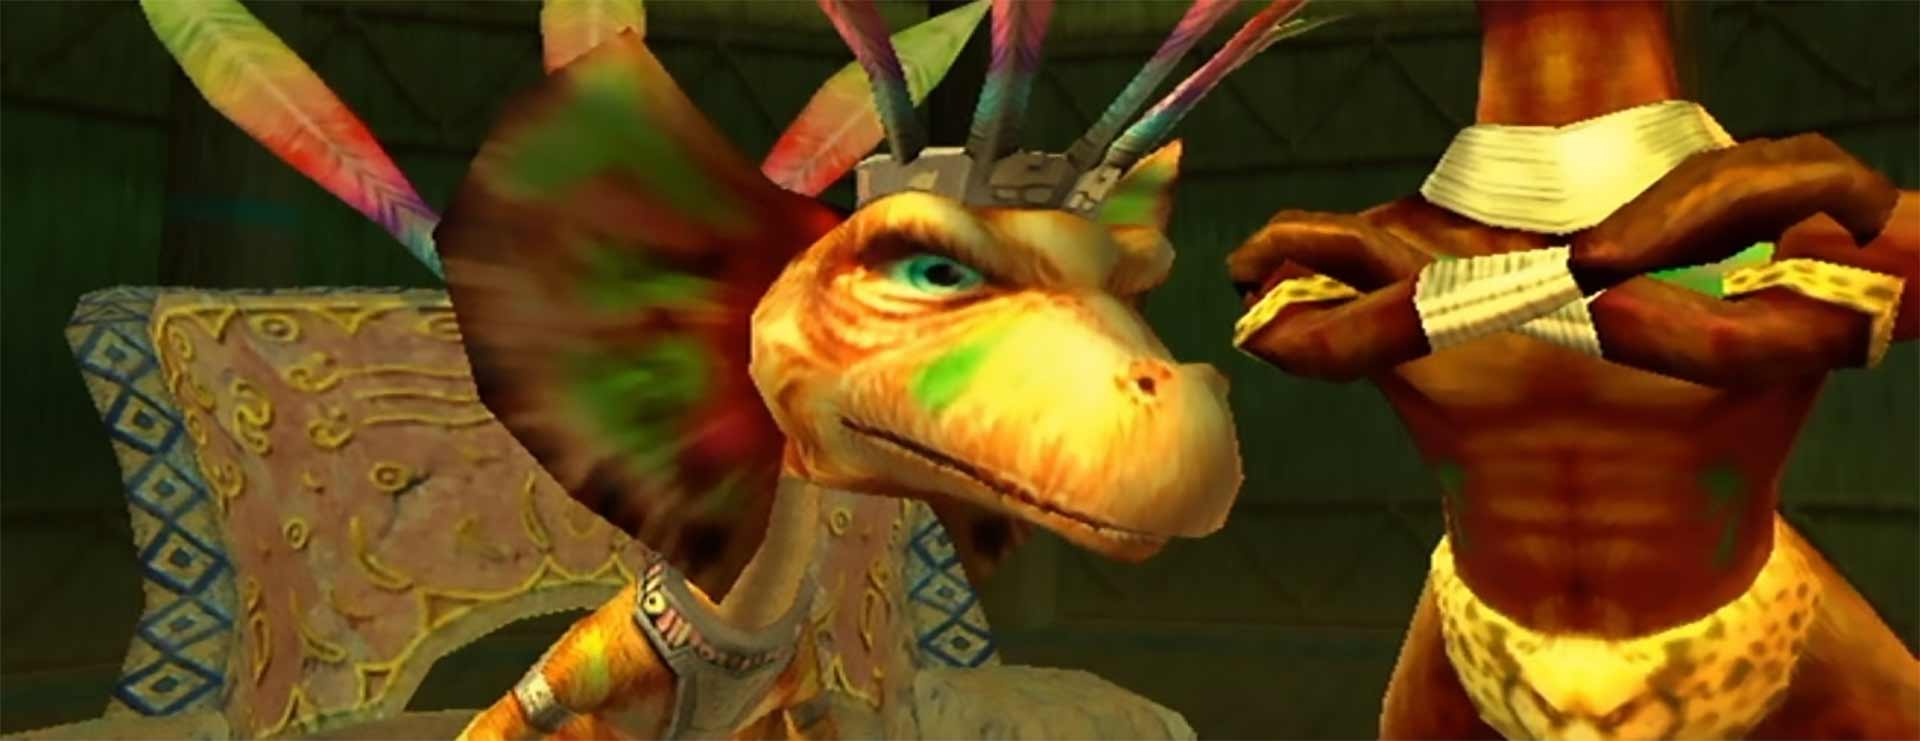 Chief LightFoot of LightFoot Village in Star Fox Adventures on the GameCube.